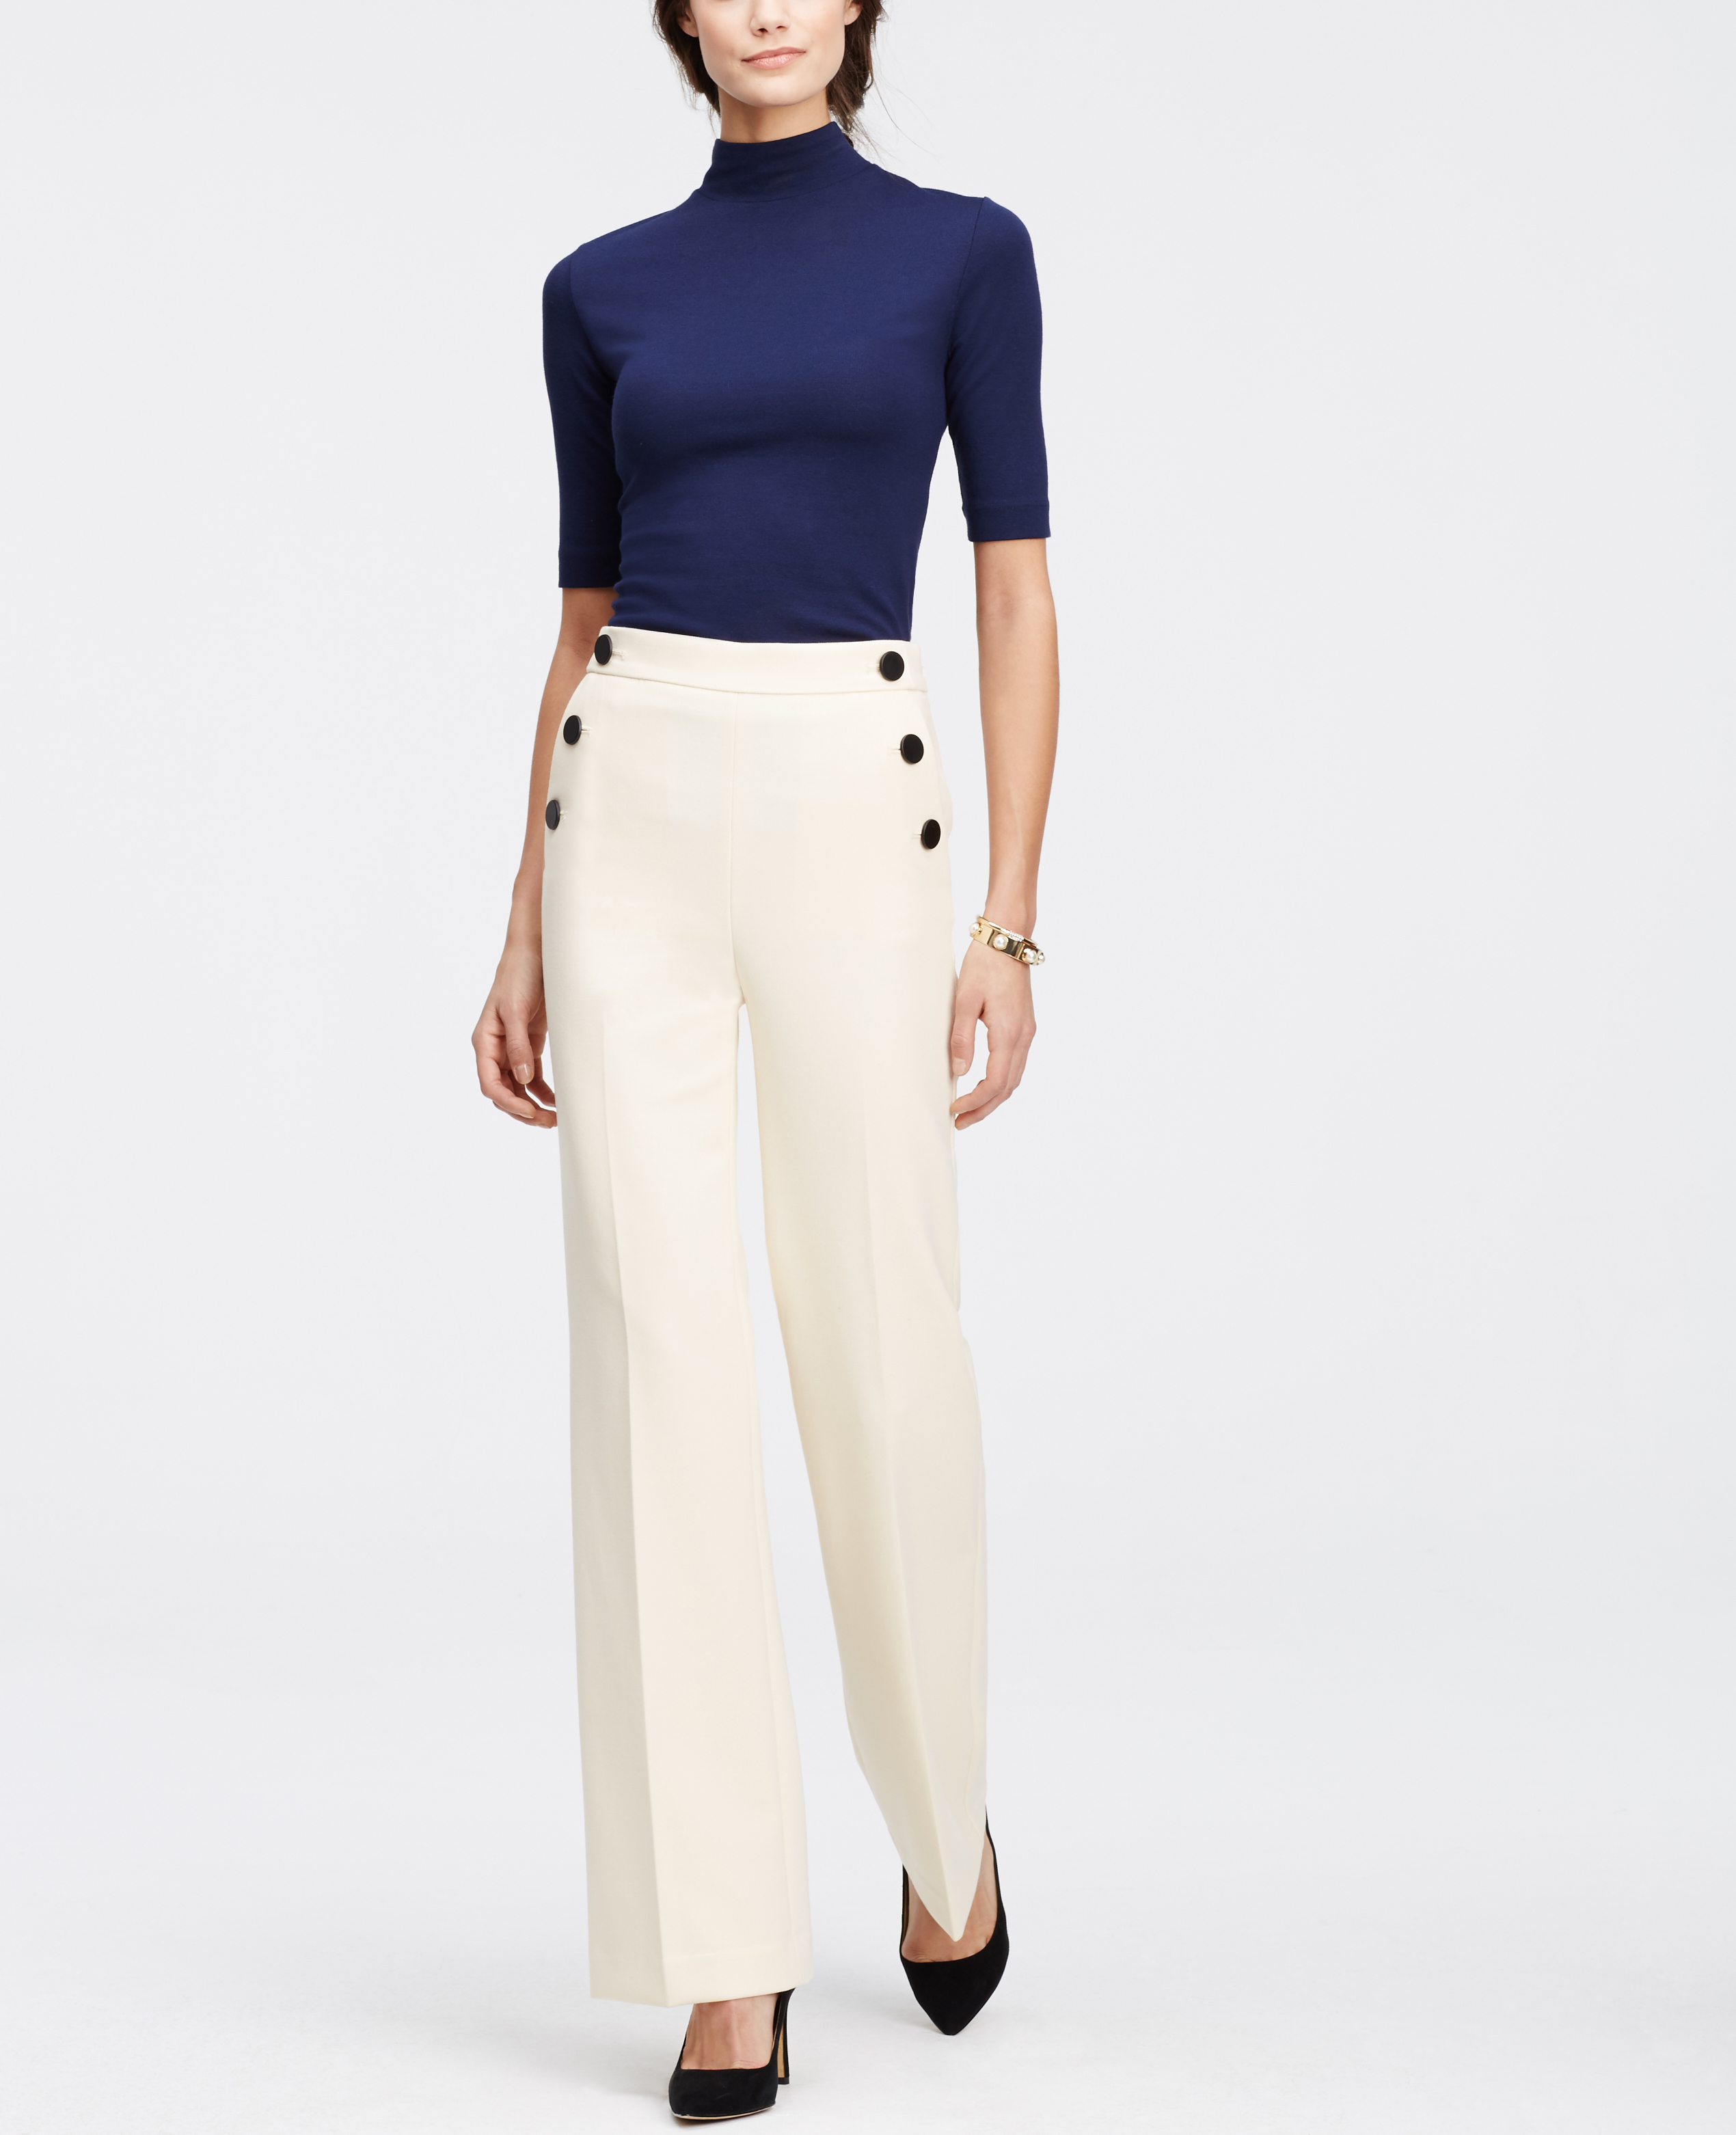 Ann Taylor Ann Taylor Loft Outlet lancar123.tk When the Ann Taylor brand was founded in , the name reflected the classic, tailored style of clothing the brand produced. Now a billion dollar company, it still appeals to women who prefer traditional styles with feminine details.